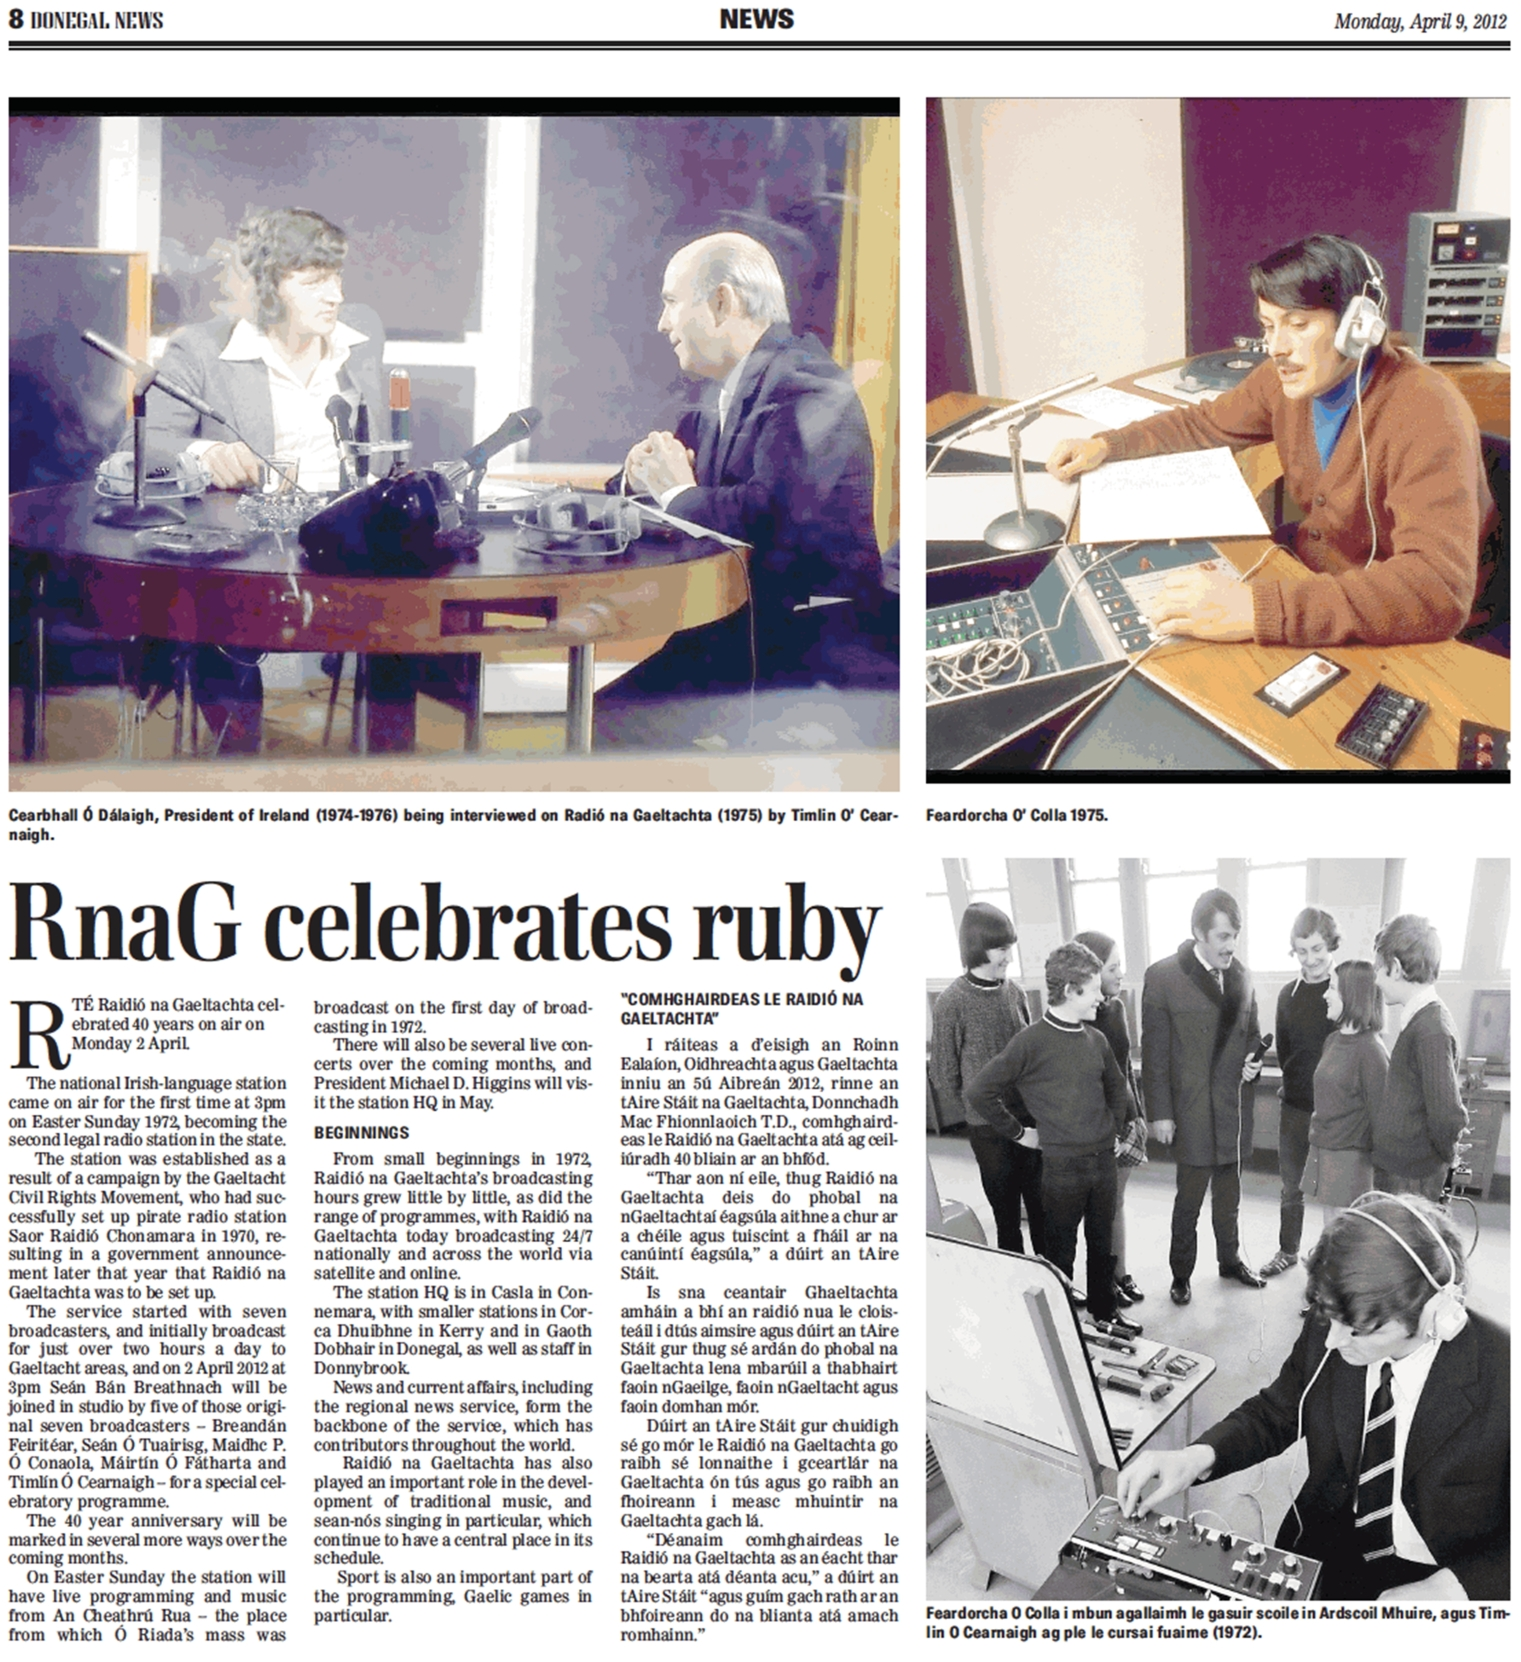 RnaG celebrates ruby was a headline in the Donegal News dated April 9th 2012